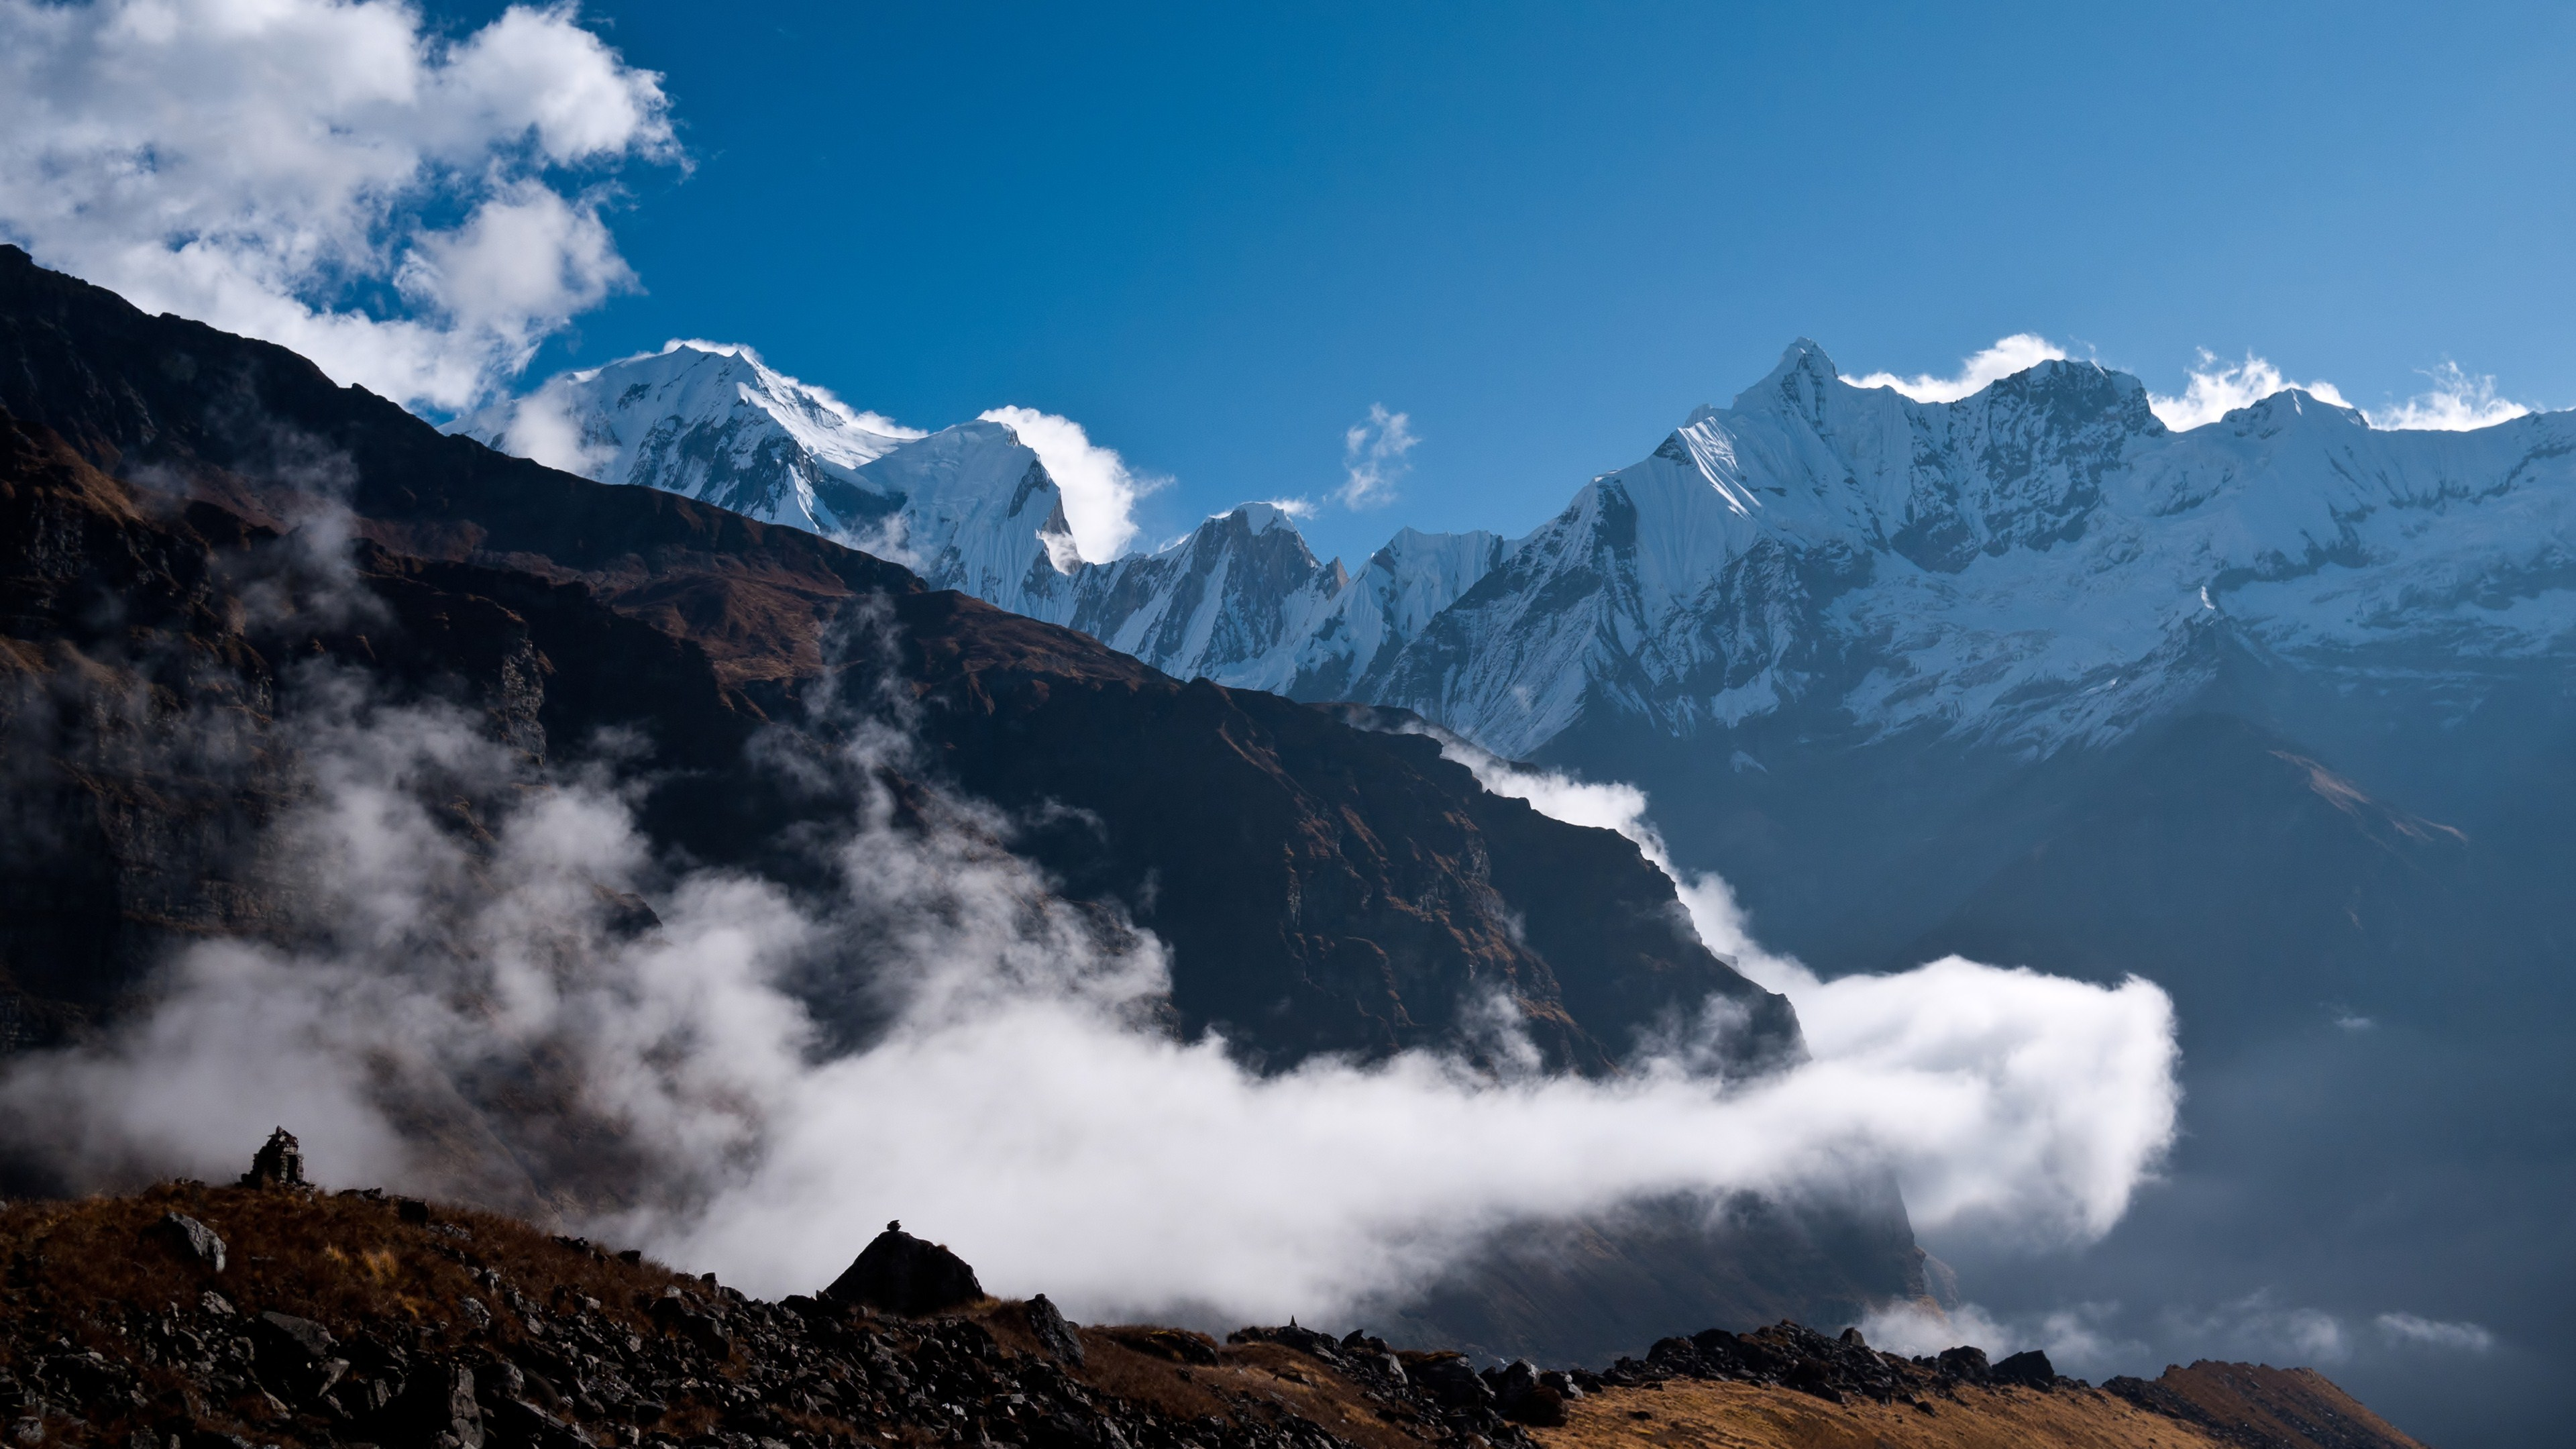 Himalayas-Landscape-Nature-in-format-for-wallpaper-wp3406884